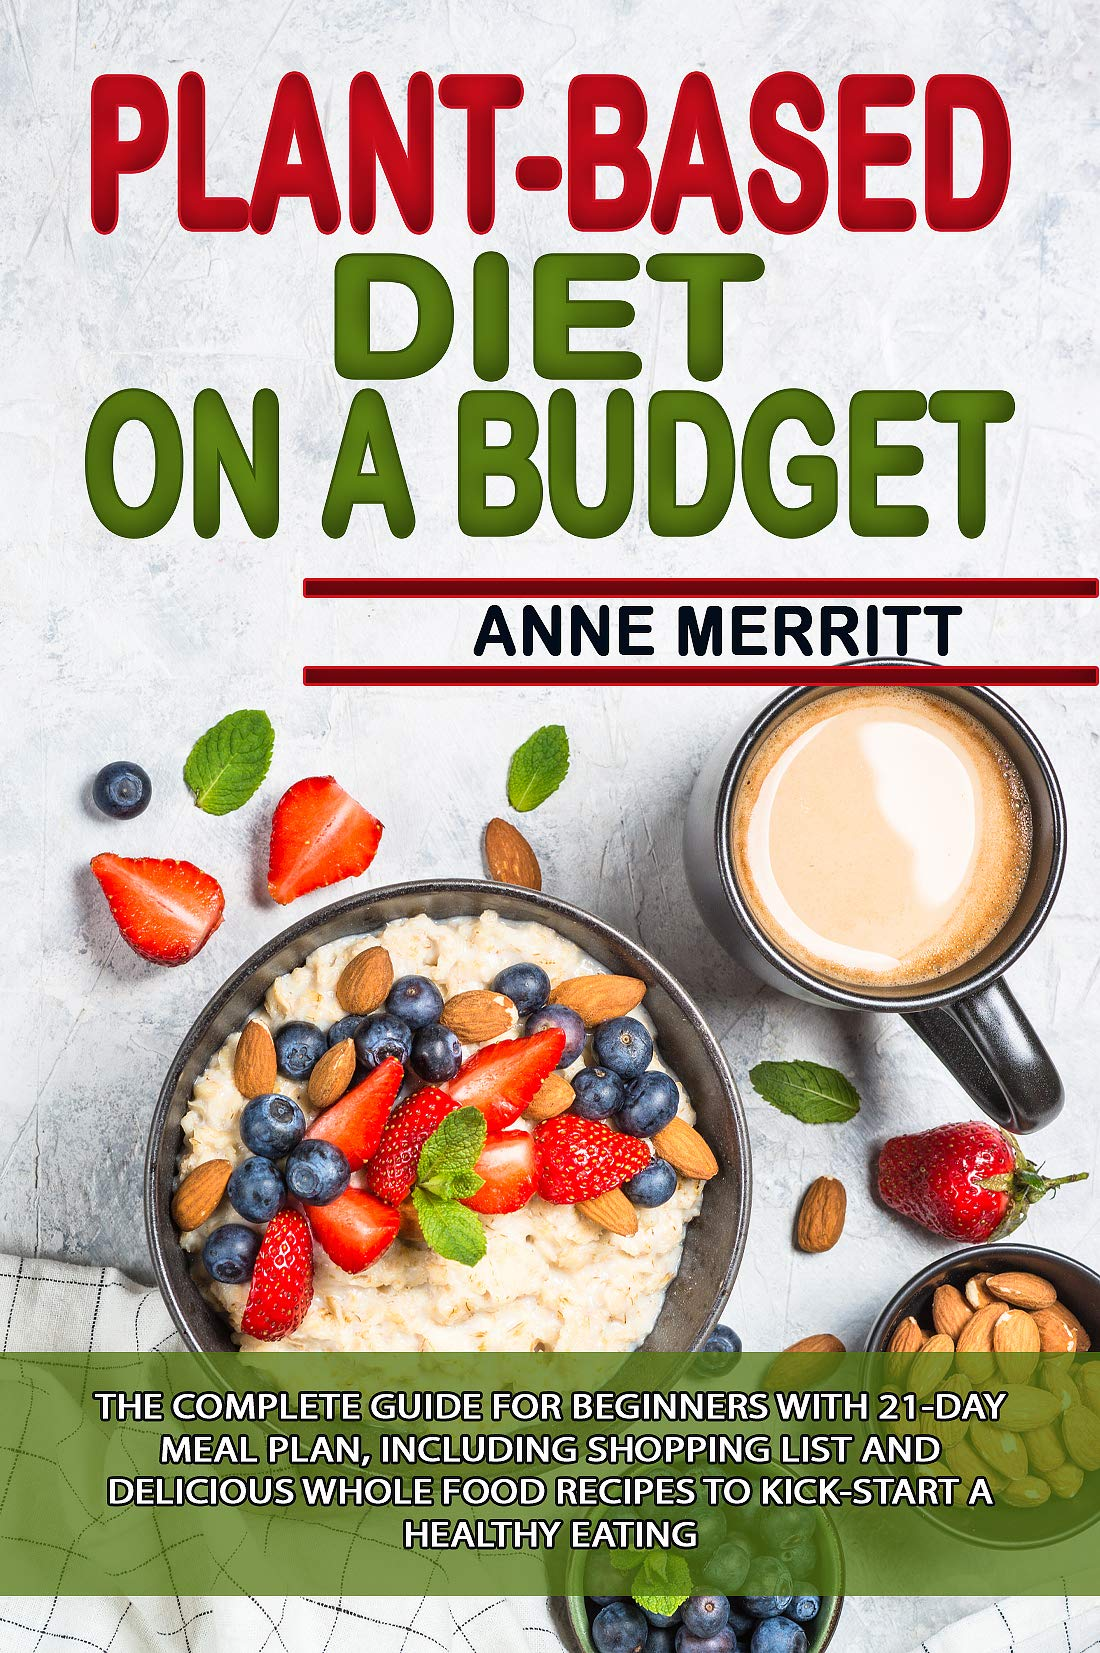 Plant-Based Diet on a Budget: The Complete Guide for Beginners with 21-Day Meal Plan, Including Shopping List and Delicious Whole Food Recipes to Kick-Start a Healthy Eating